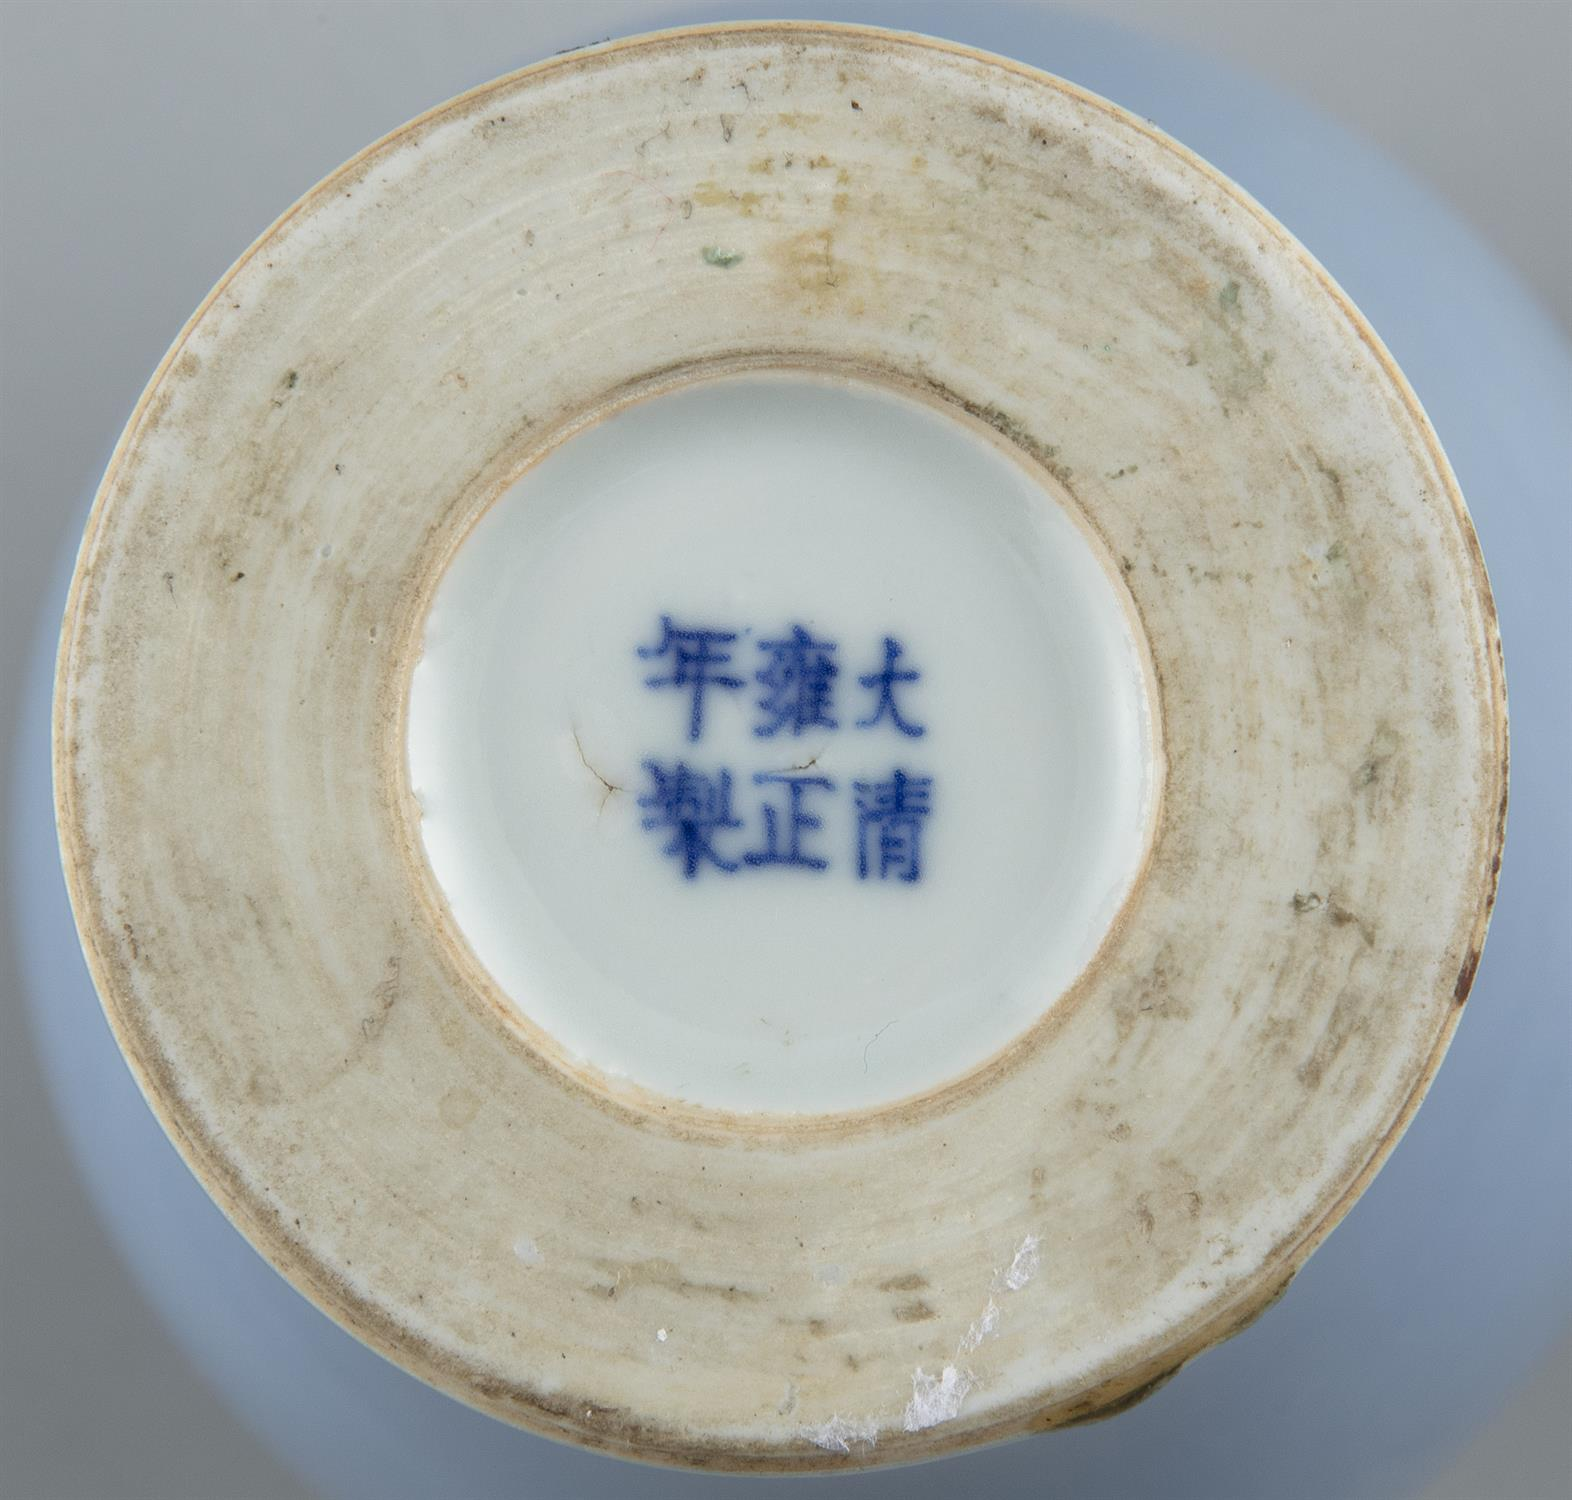 A CLAIR DE LUNE GLAZED PORCELAIN MEIPING VASE China, Qing Dynasty The below inscribed with the - Image 11 of 11